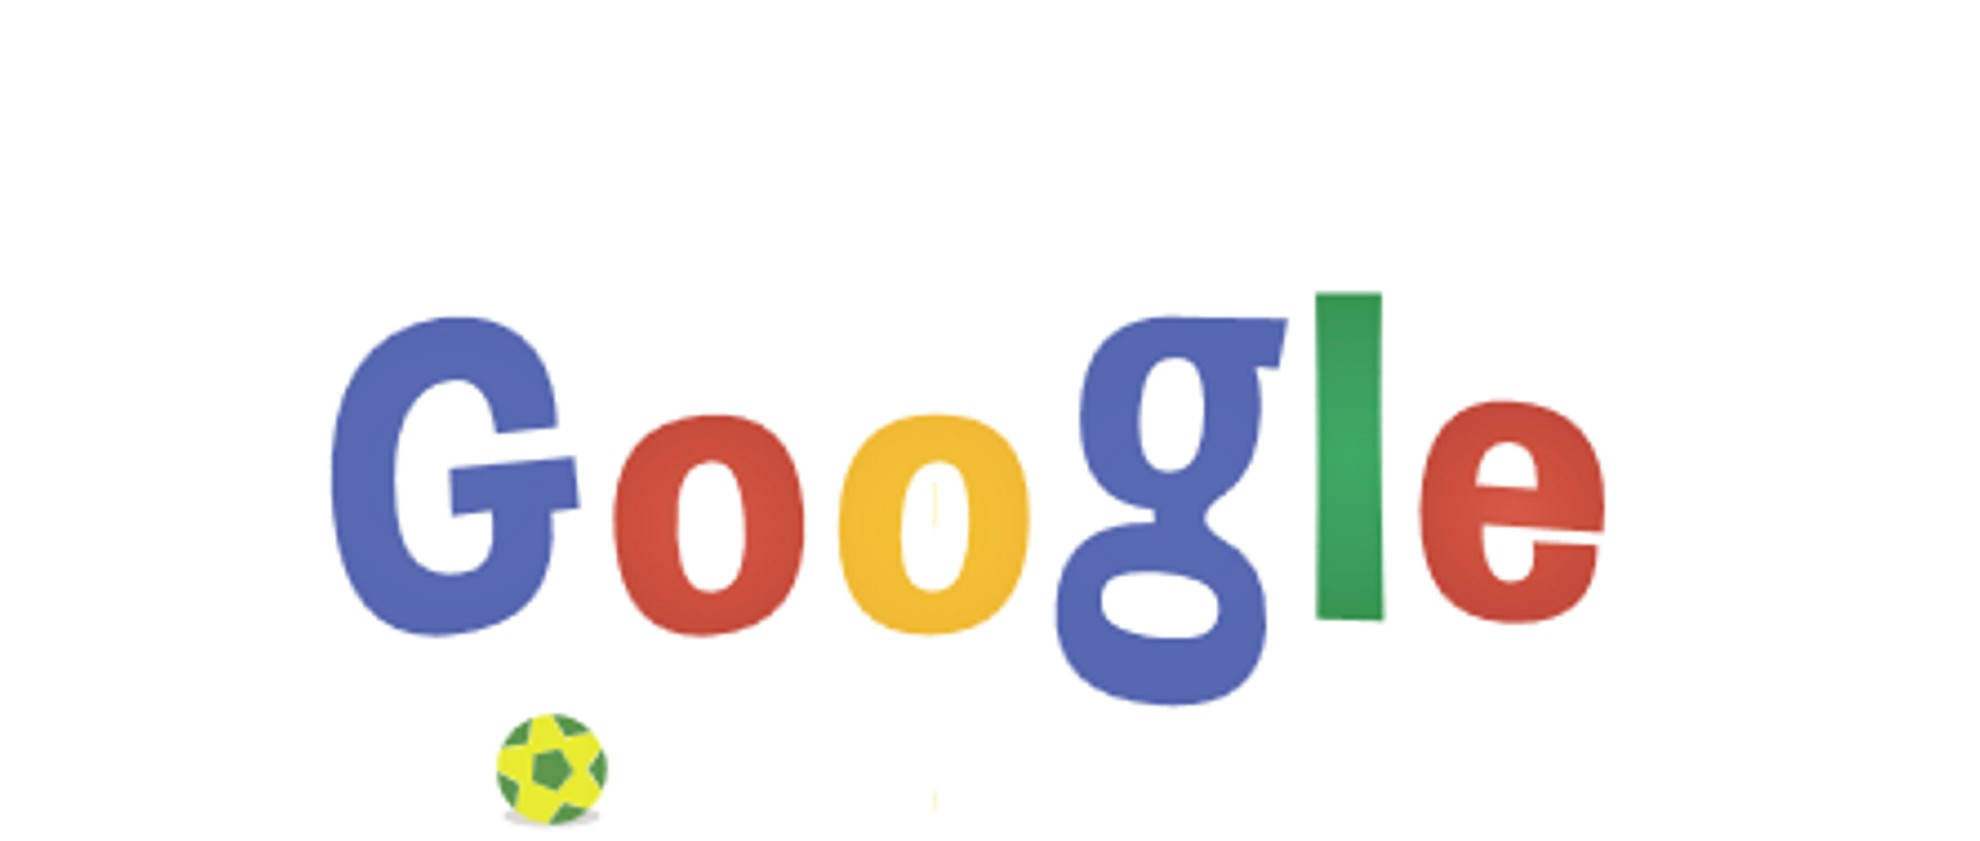 World_Cup_2014_Google_Doodles